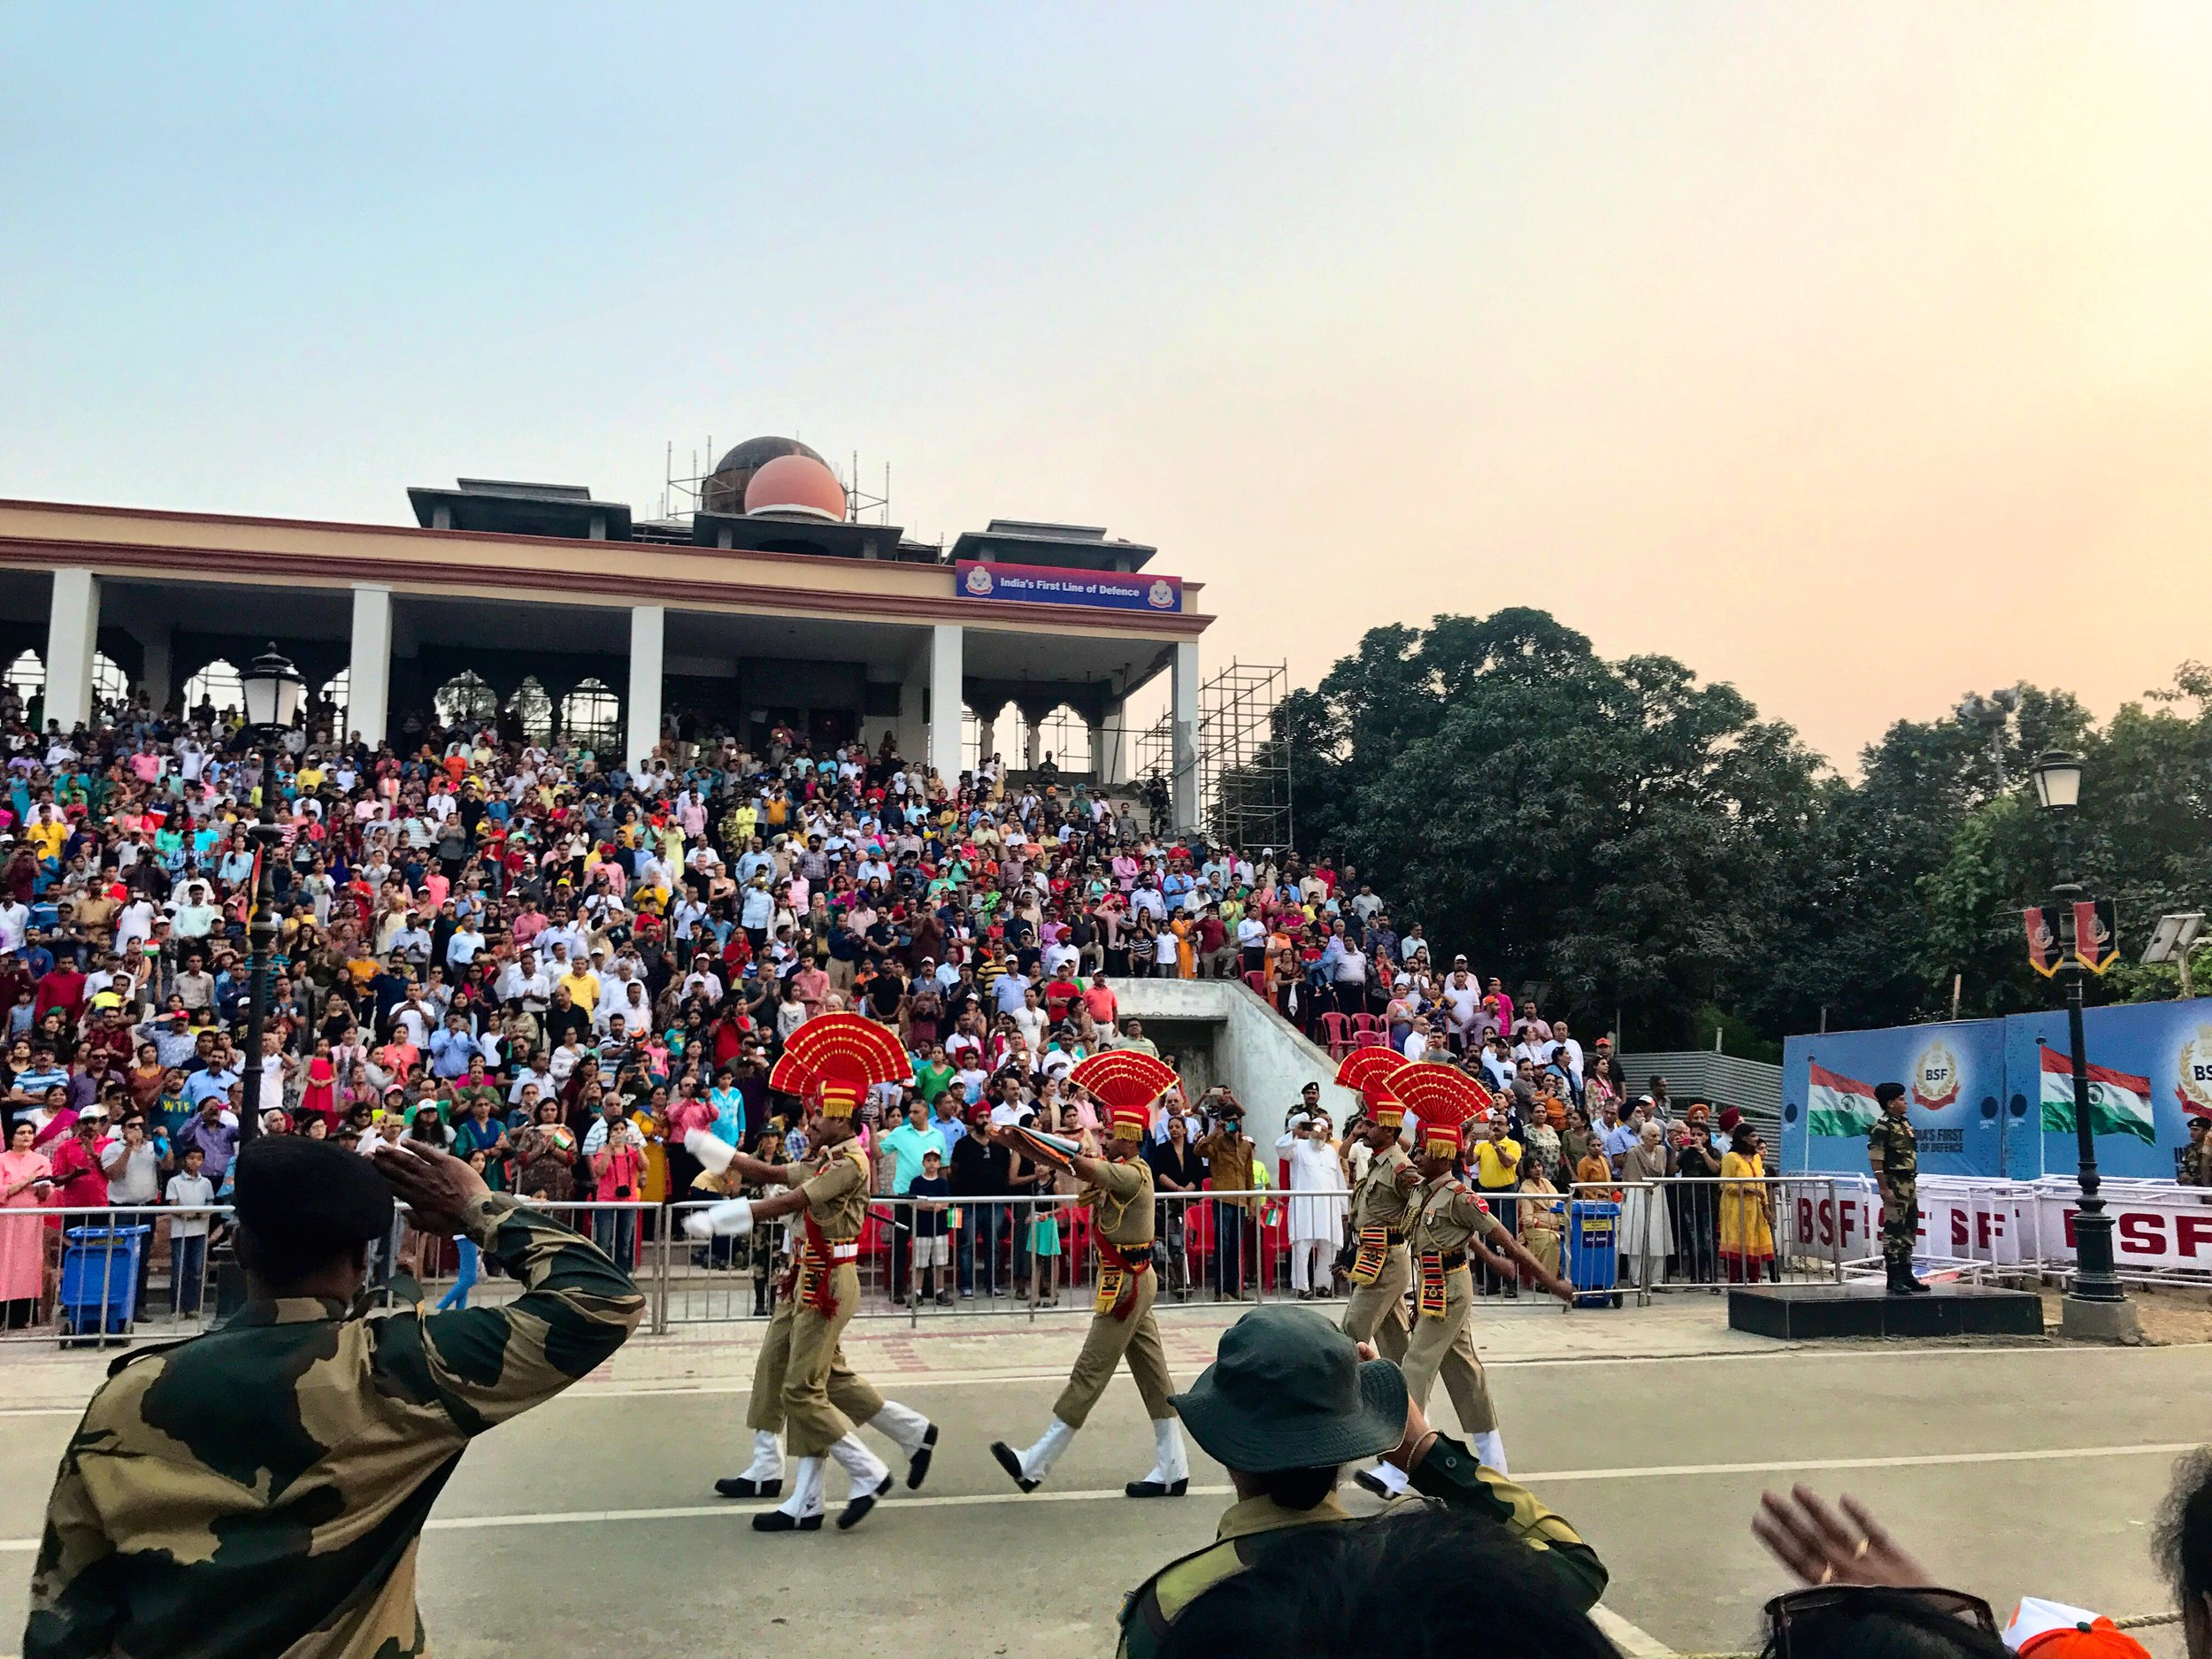 Wagah border ceremony, Punjab, India